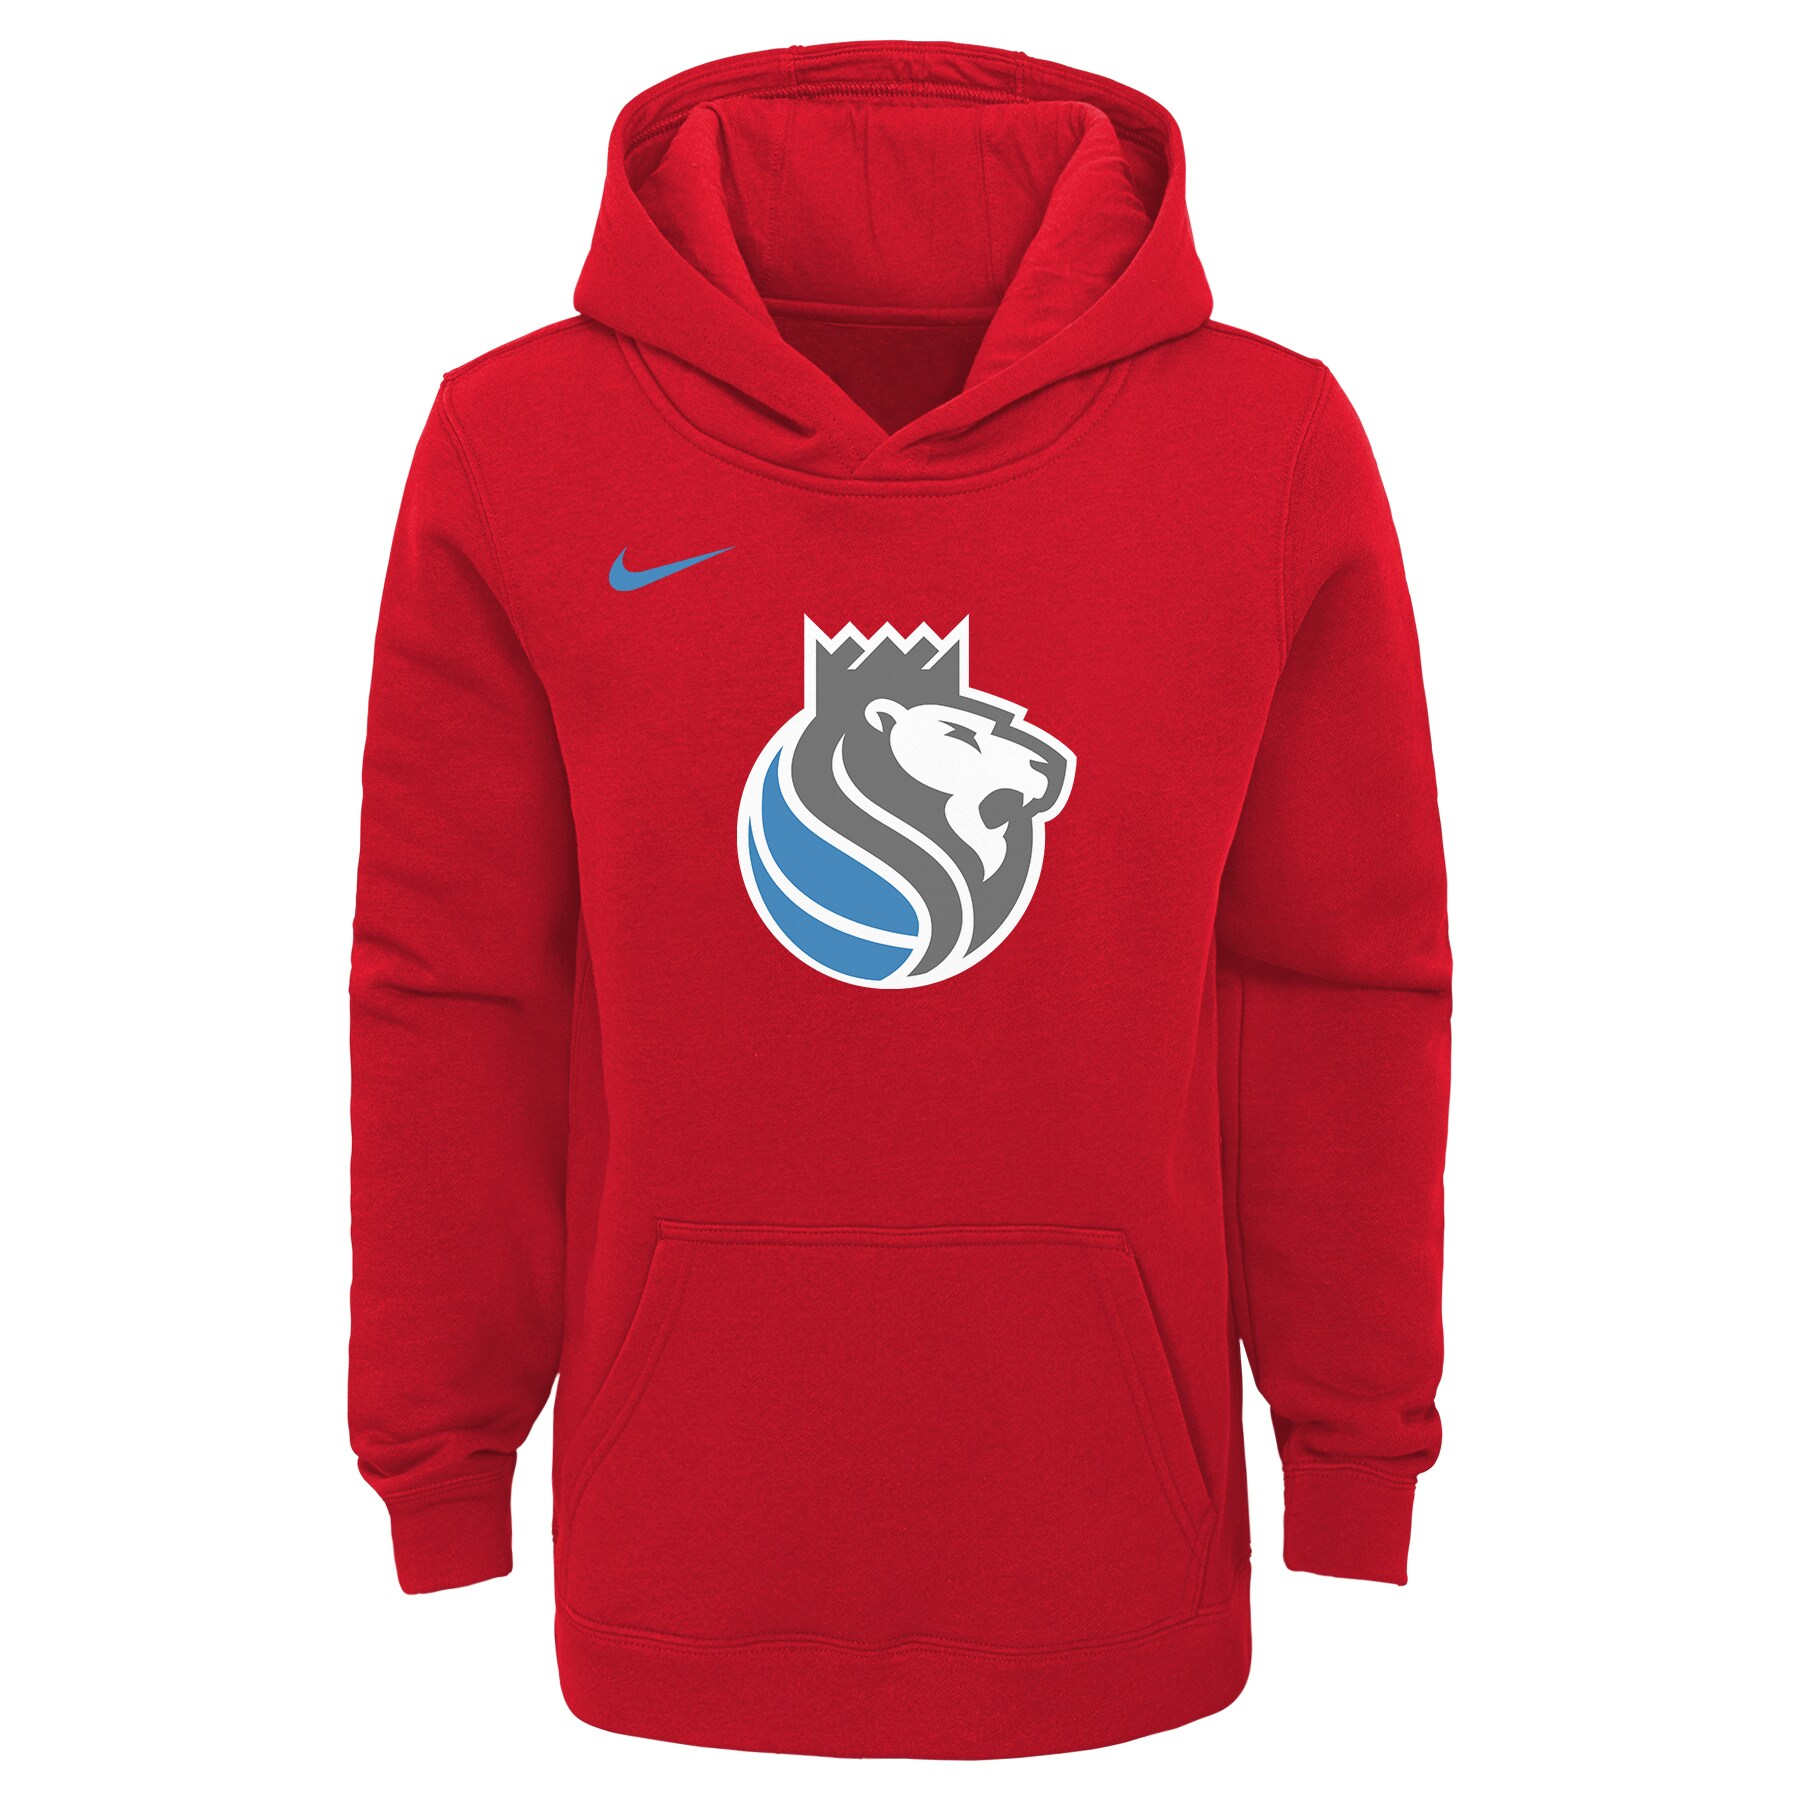 Sacramento Kings Nike Youth 2019/20 City Edition Club Pullover Hoodie - Red